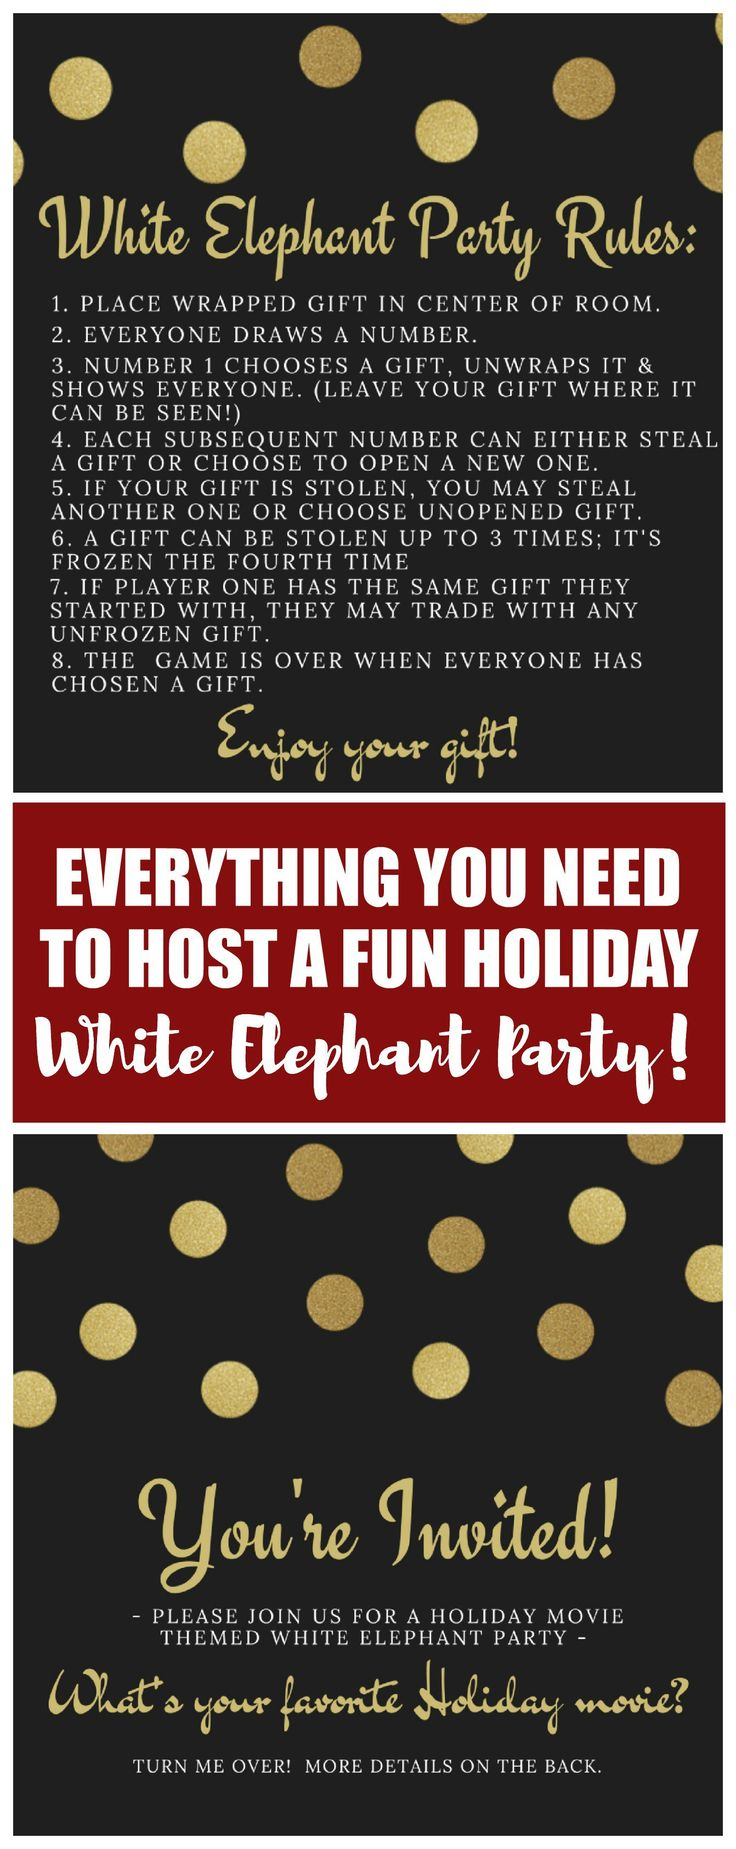 These ideas about how to host a Holiday White Elephant Party are incredibly simple and easy to pull together. Plus, everything you need is there from the printable invitations and rules to the food and decor ideas. LOVE!